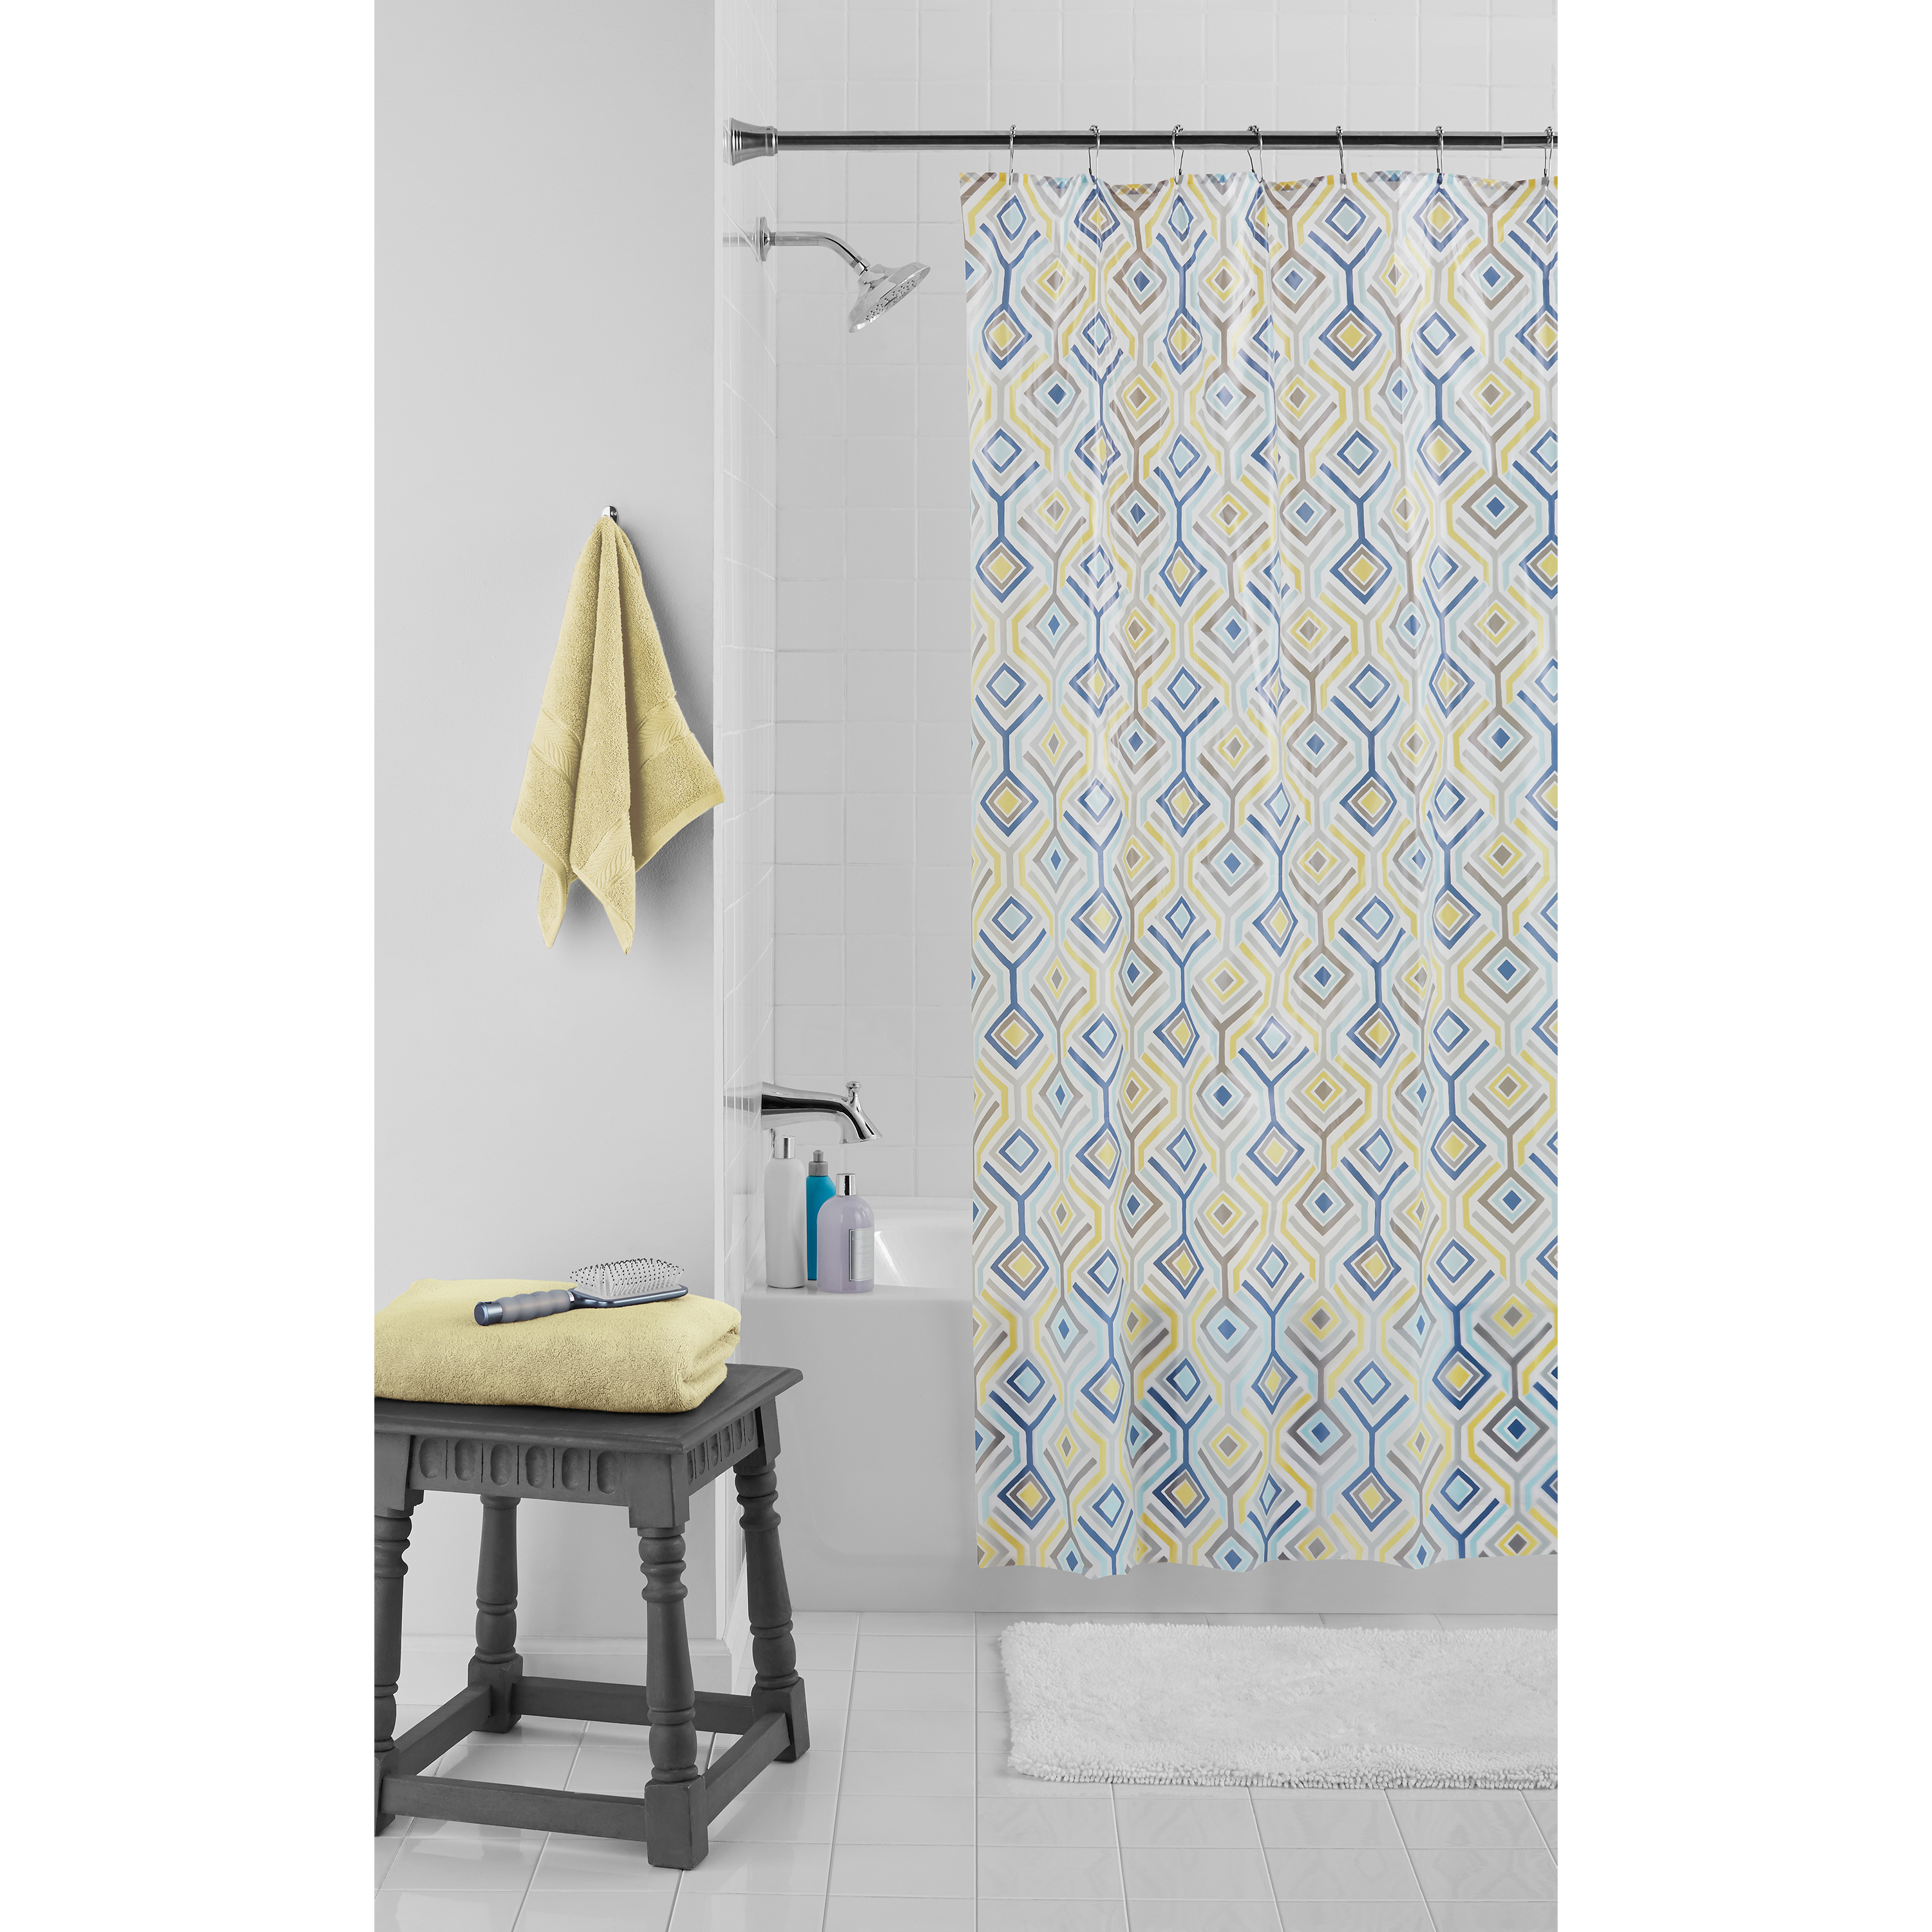 Product Image Mainstays Diamond Shower Curtain Set With Metal Hooks, 13  Pieces